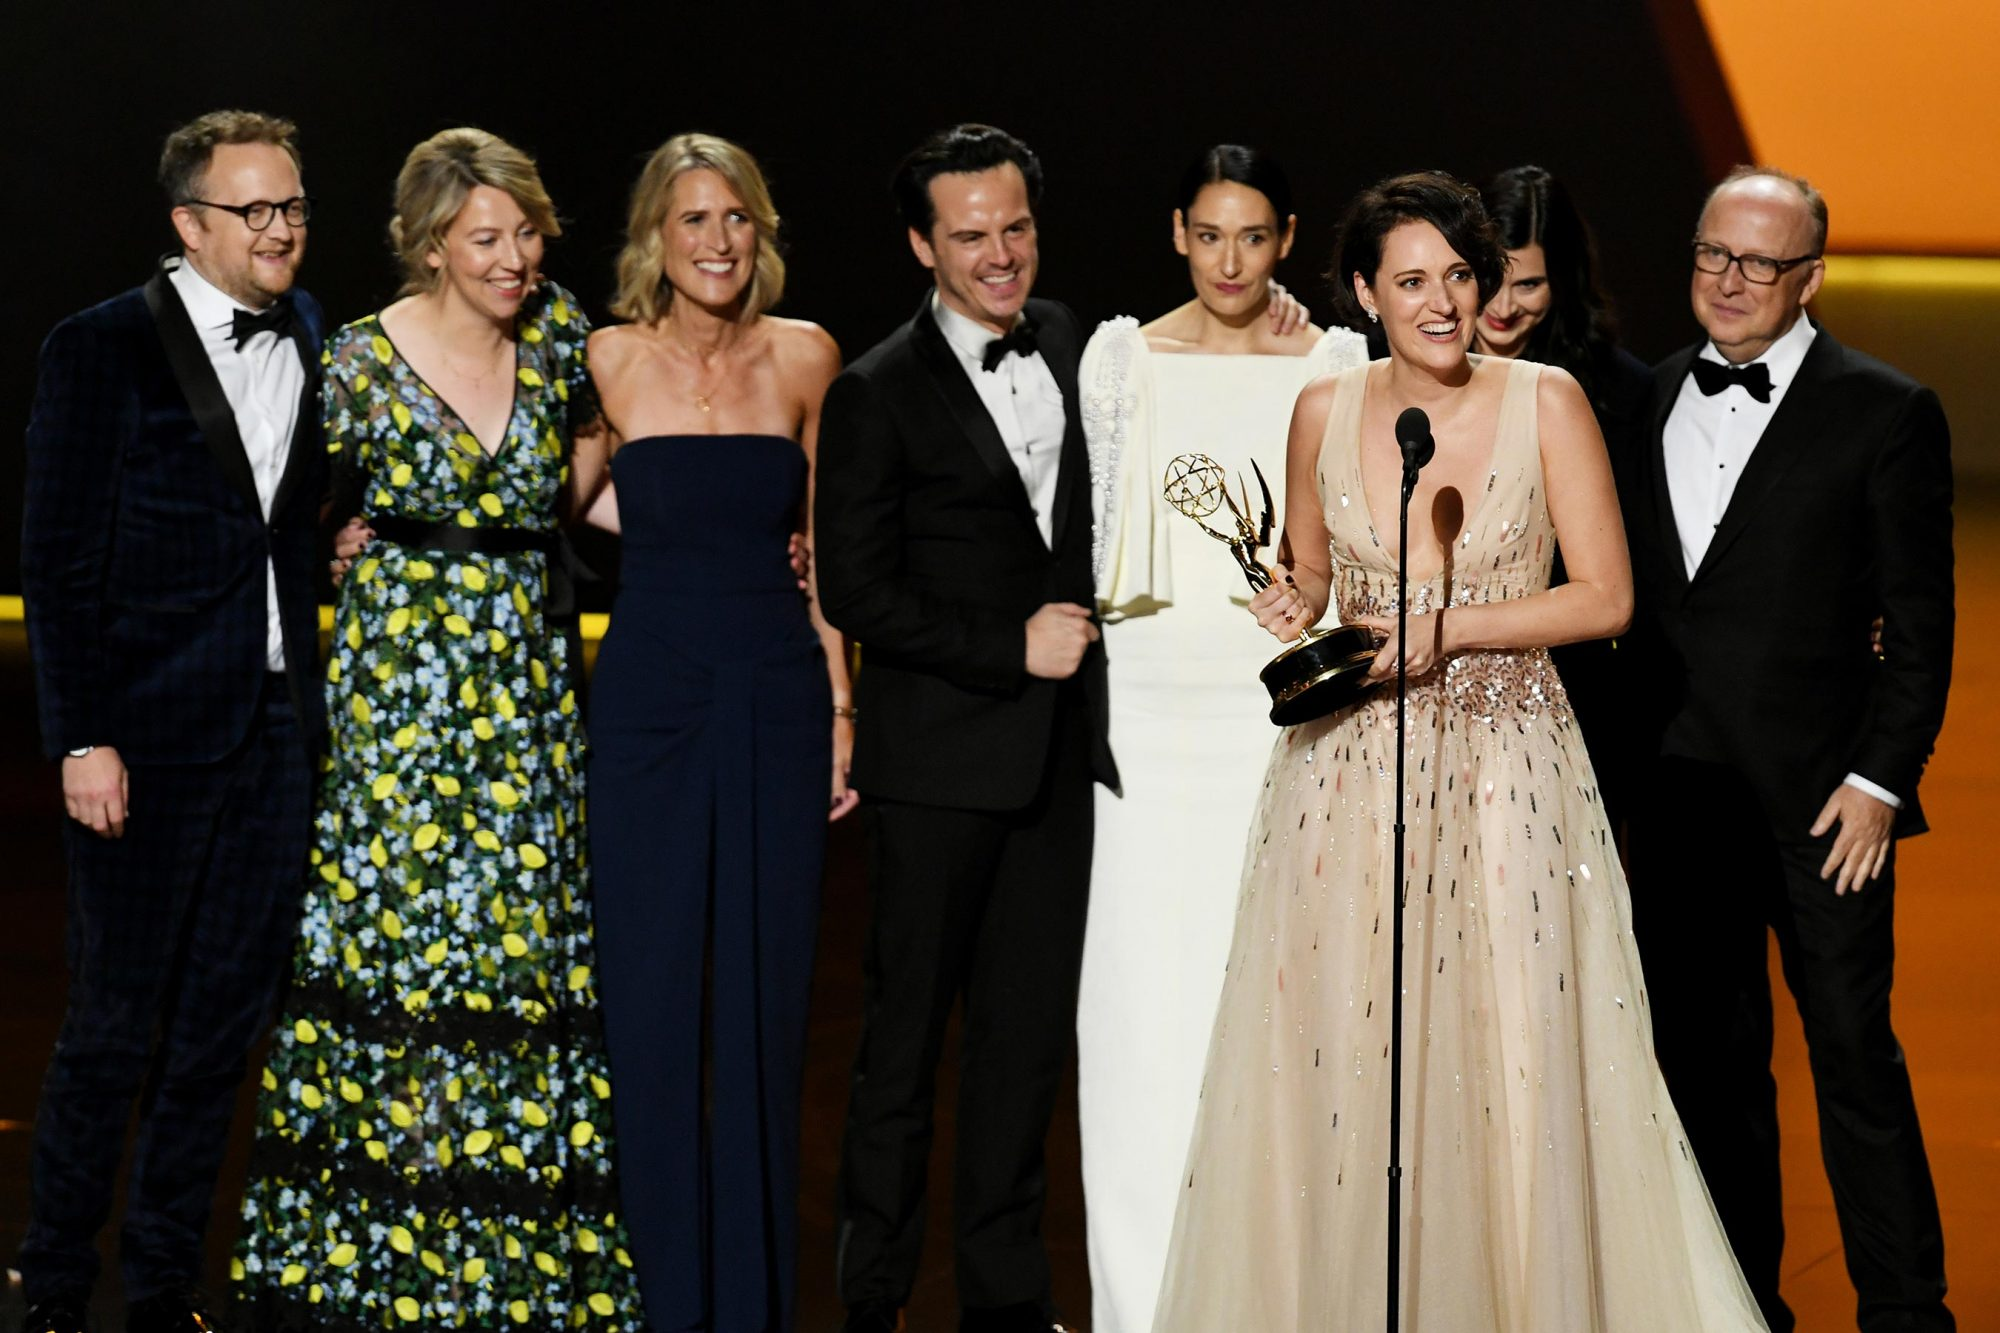 Phoebe Waller-Bridge (speaking) and fellow cast and crew members of 'Fleabag' accept the Outstanding Comedy Series award